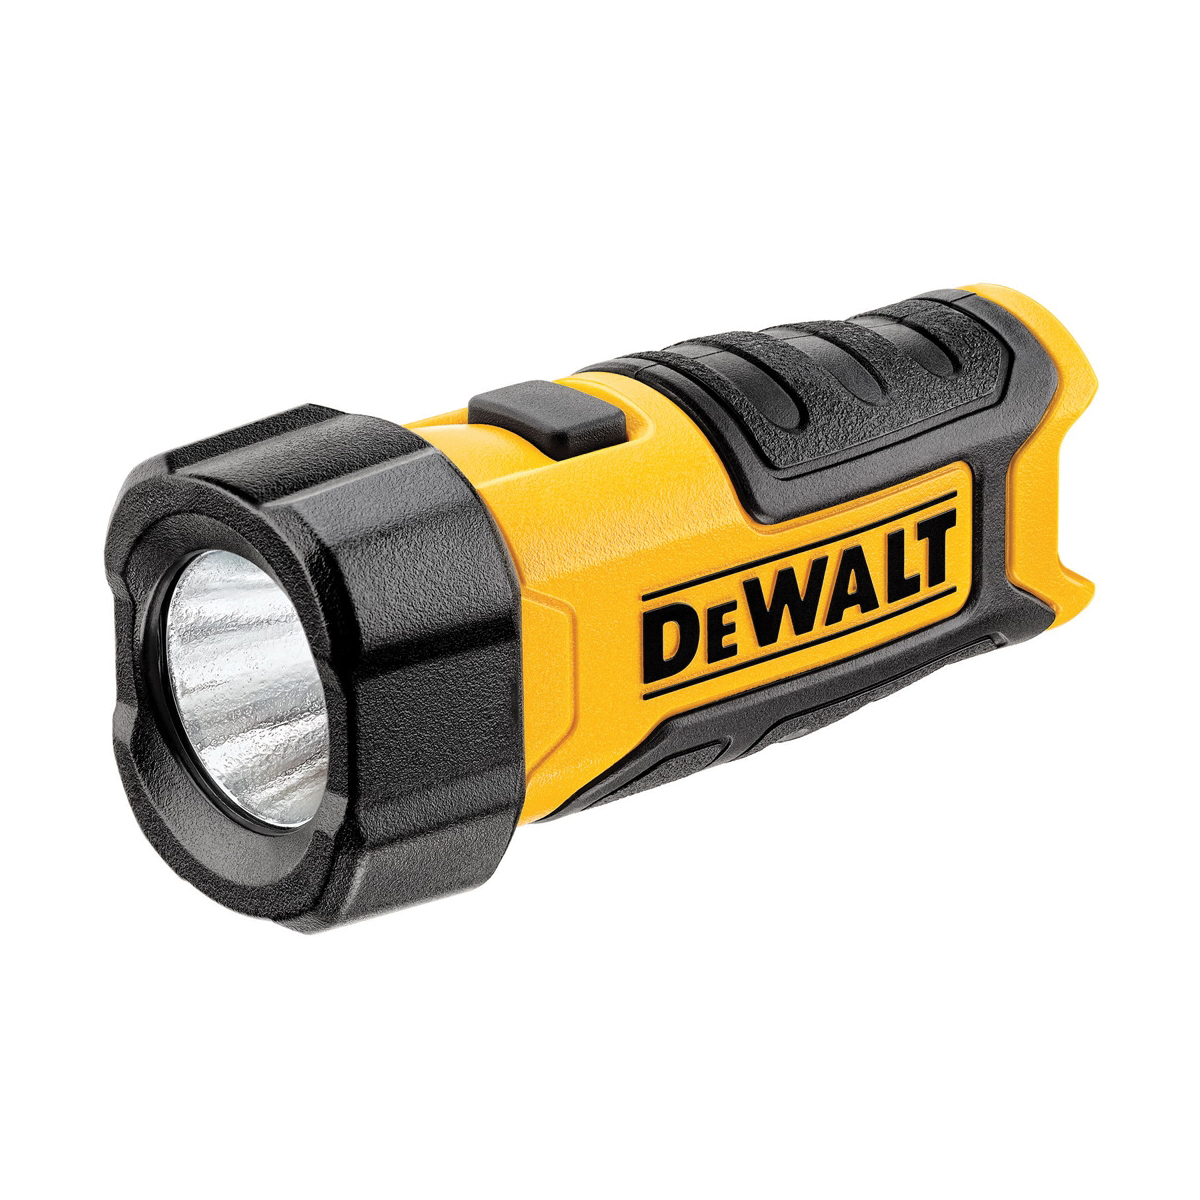 DeWALT® DCL023 Rechargeable Cordless Worklight, LED Lamp, 8 VDC, Lithium-Ion Battery, Tool Only